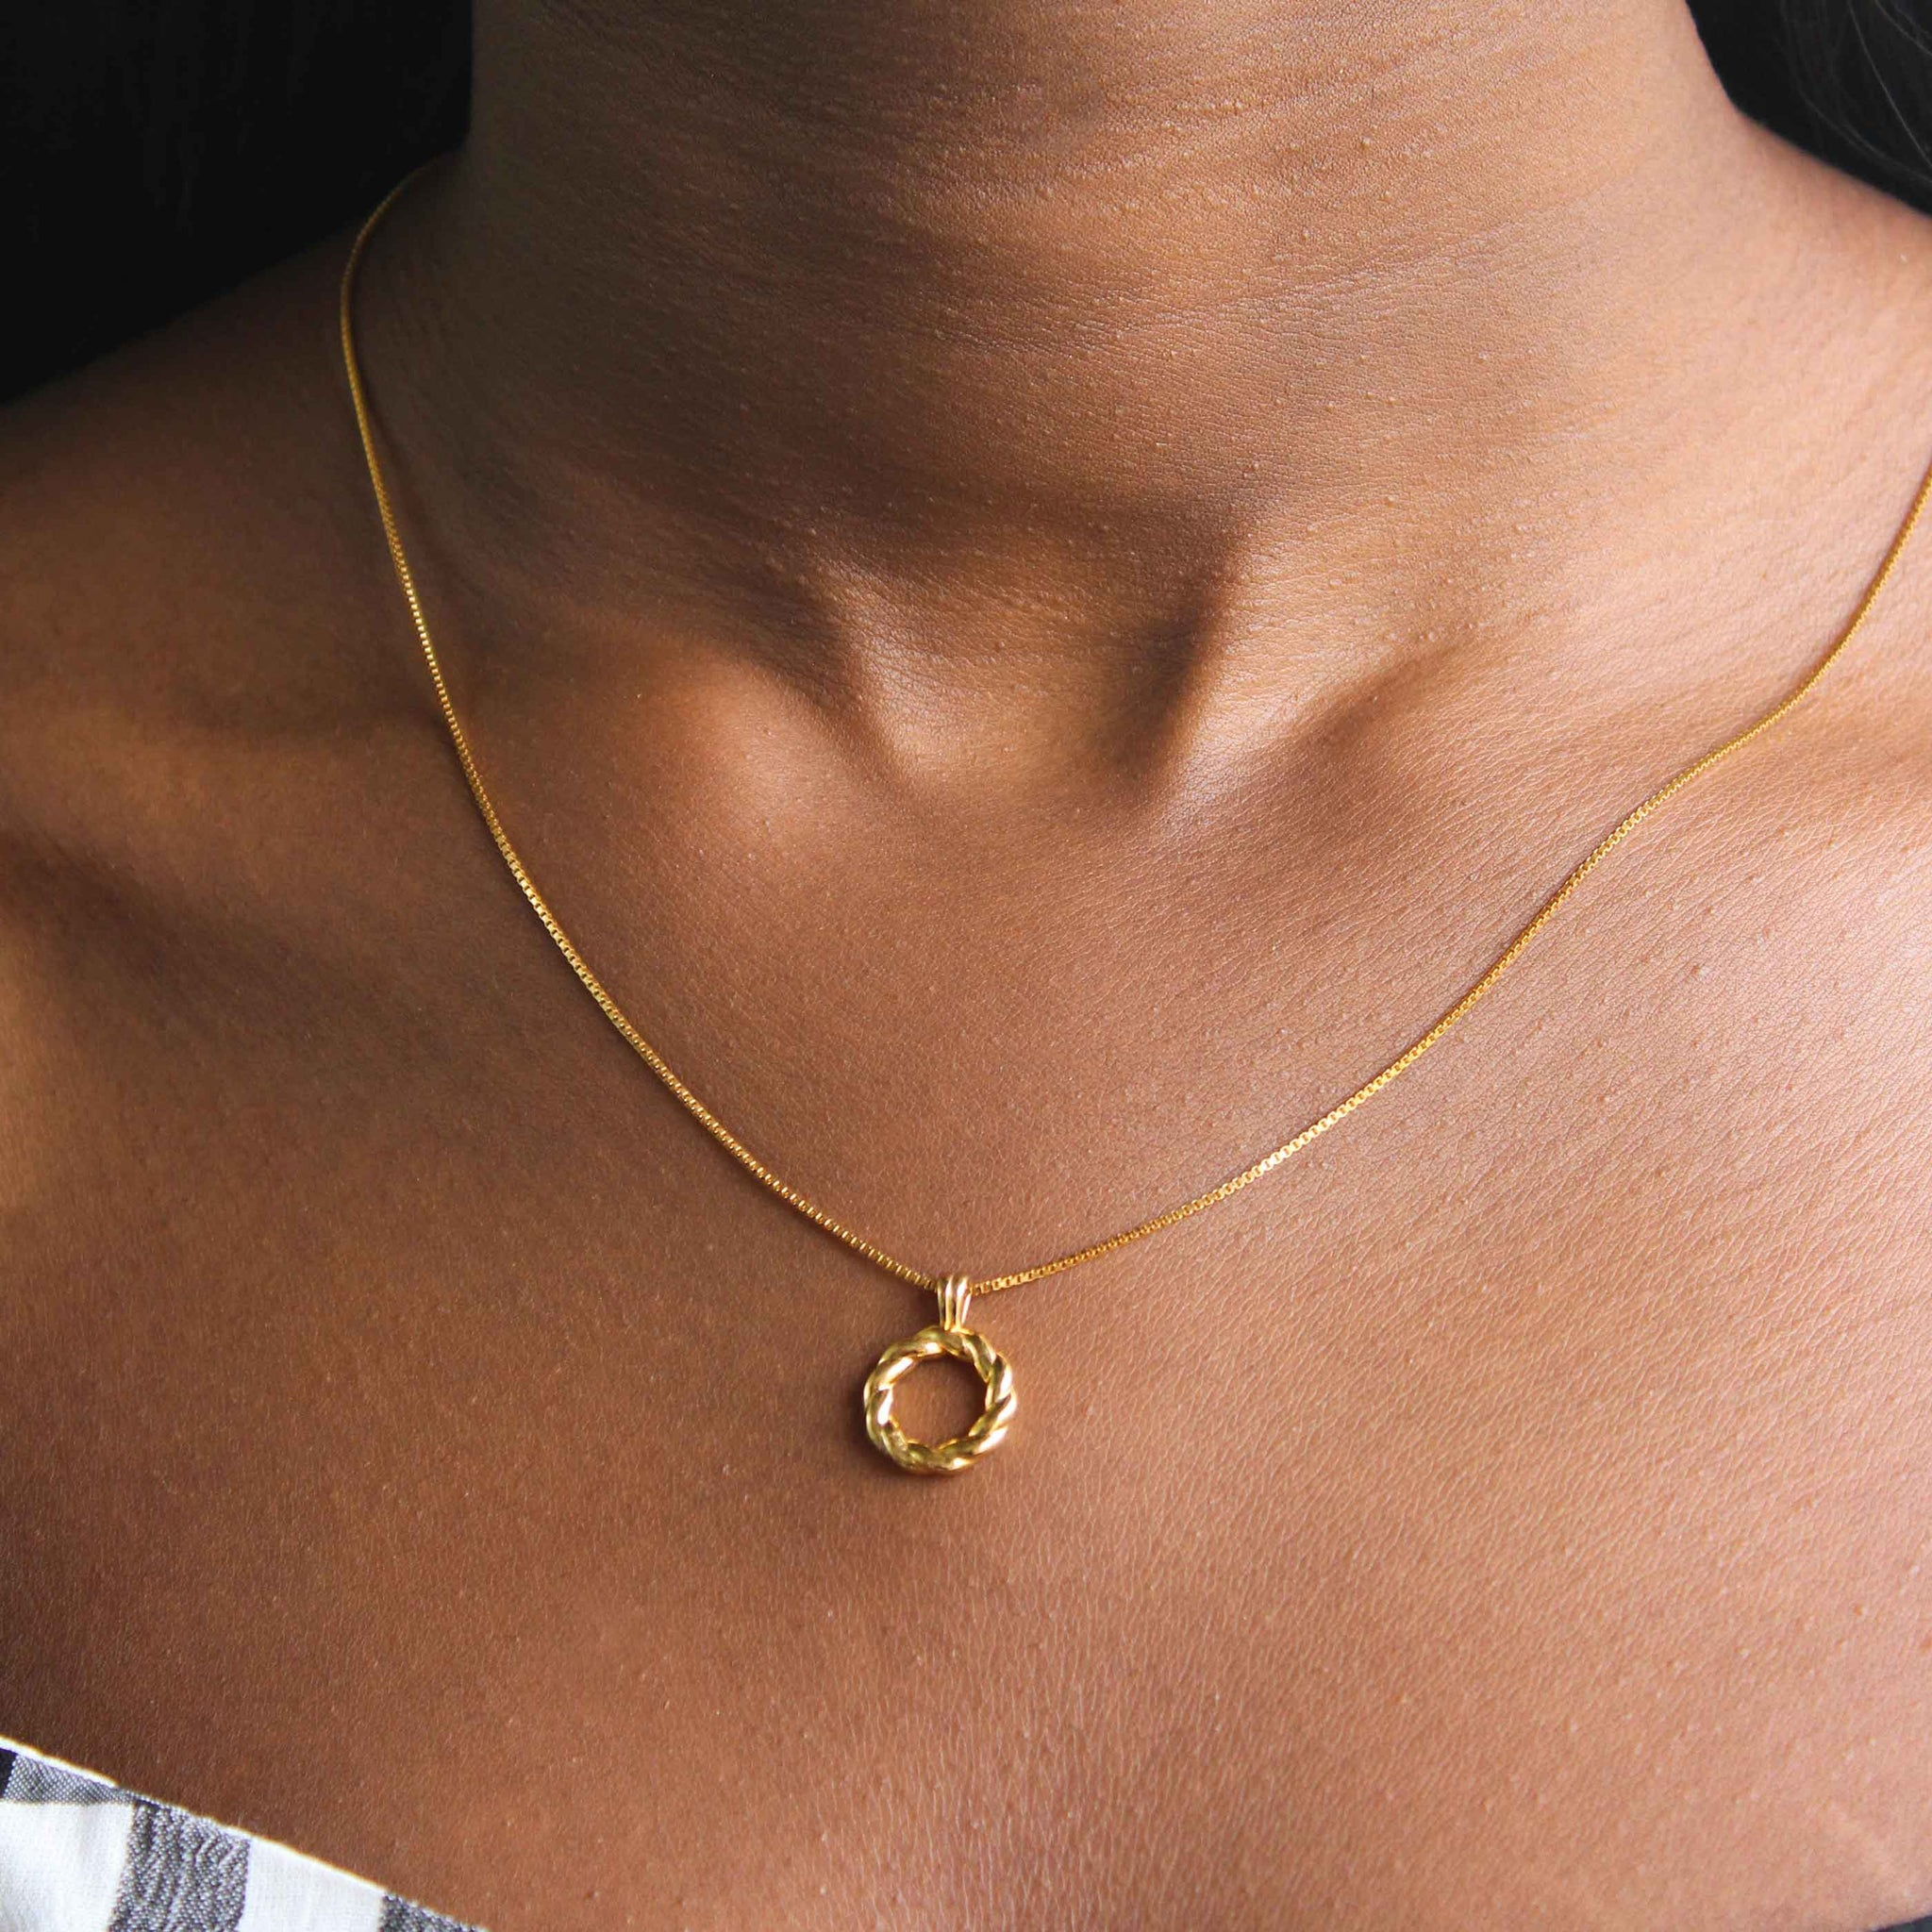 Rope Ring Pendant Necklace in Gold worn image